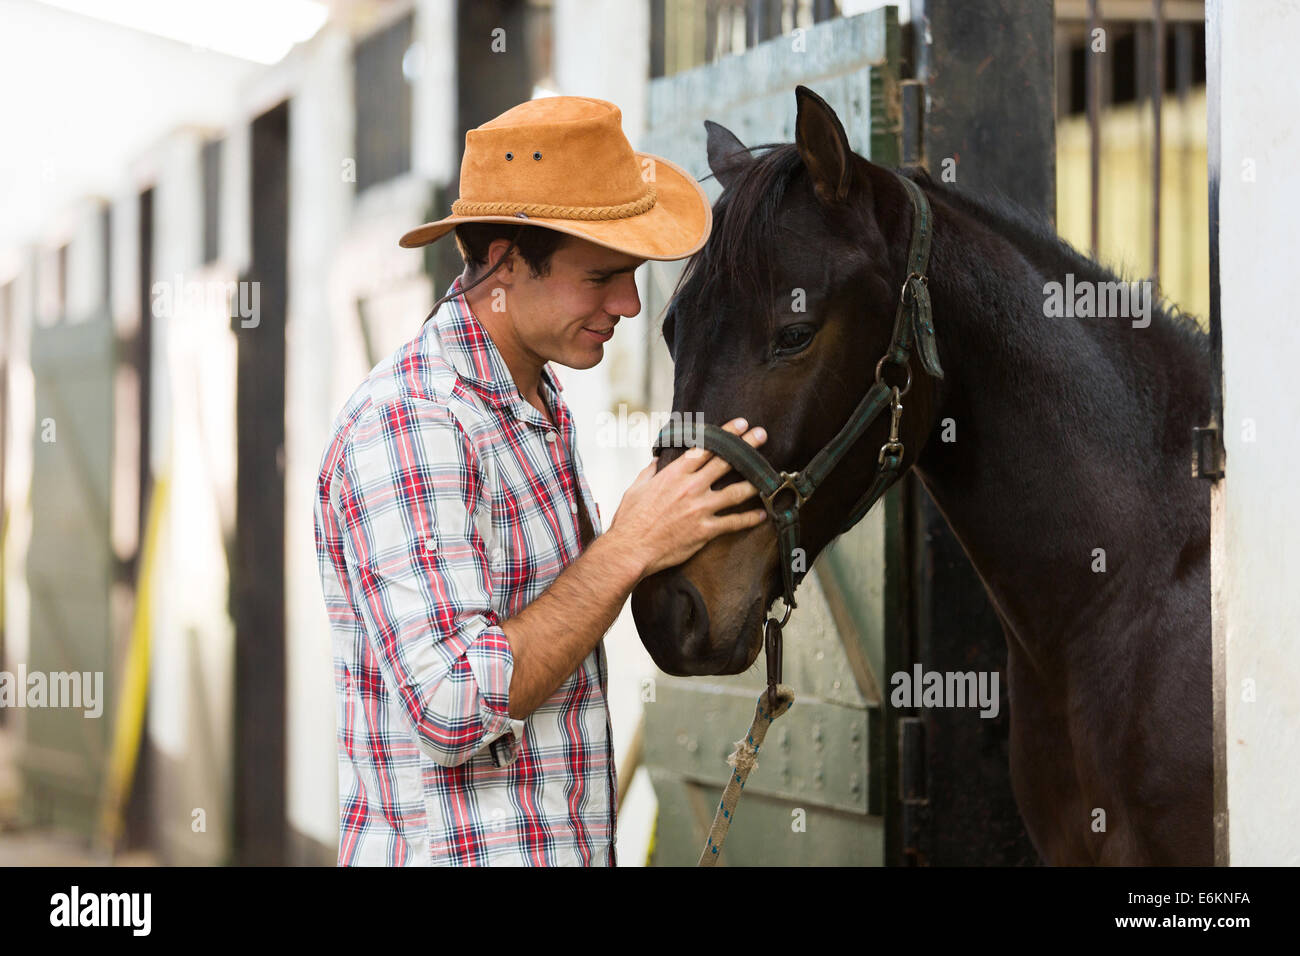 young horse breeder comforting a horse in stable - Stock Image